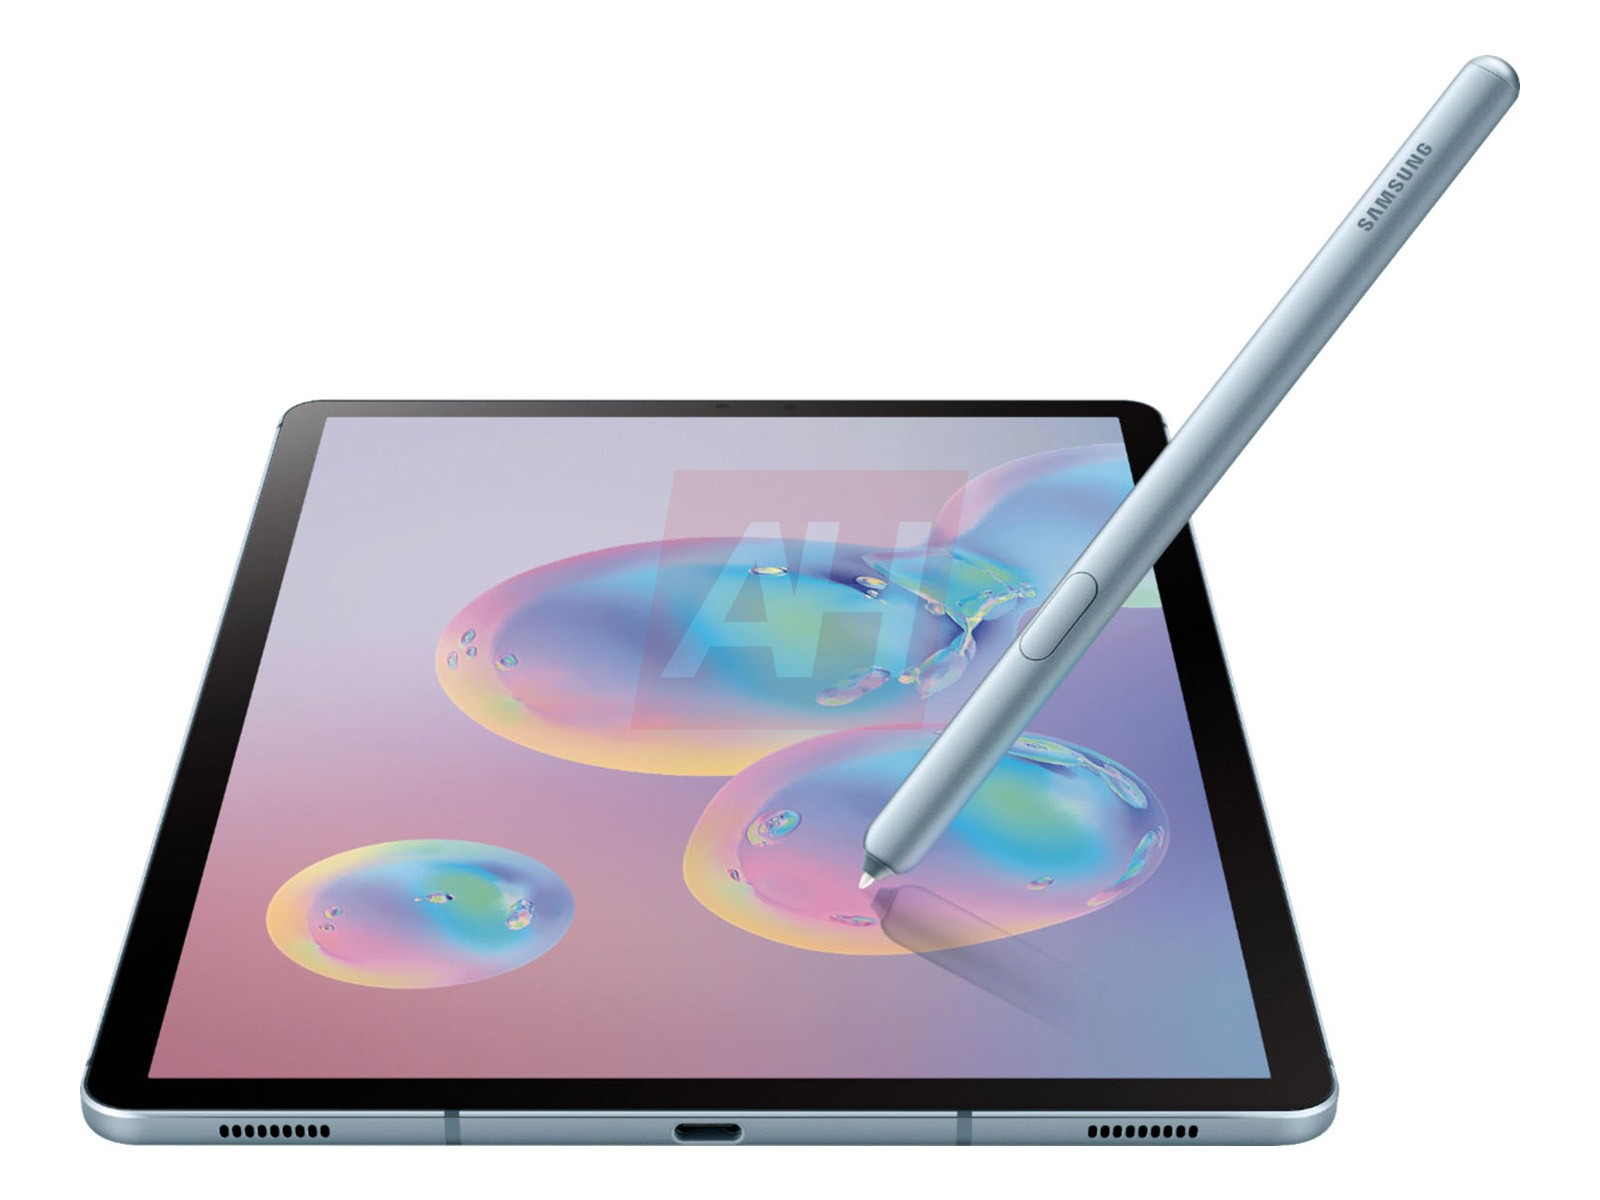 Samsung Galaxy Tab S6 specification leak suggests Air Mouse feature